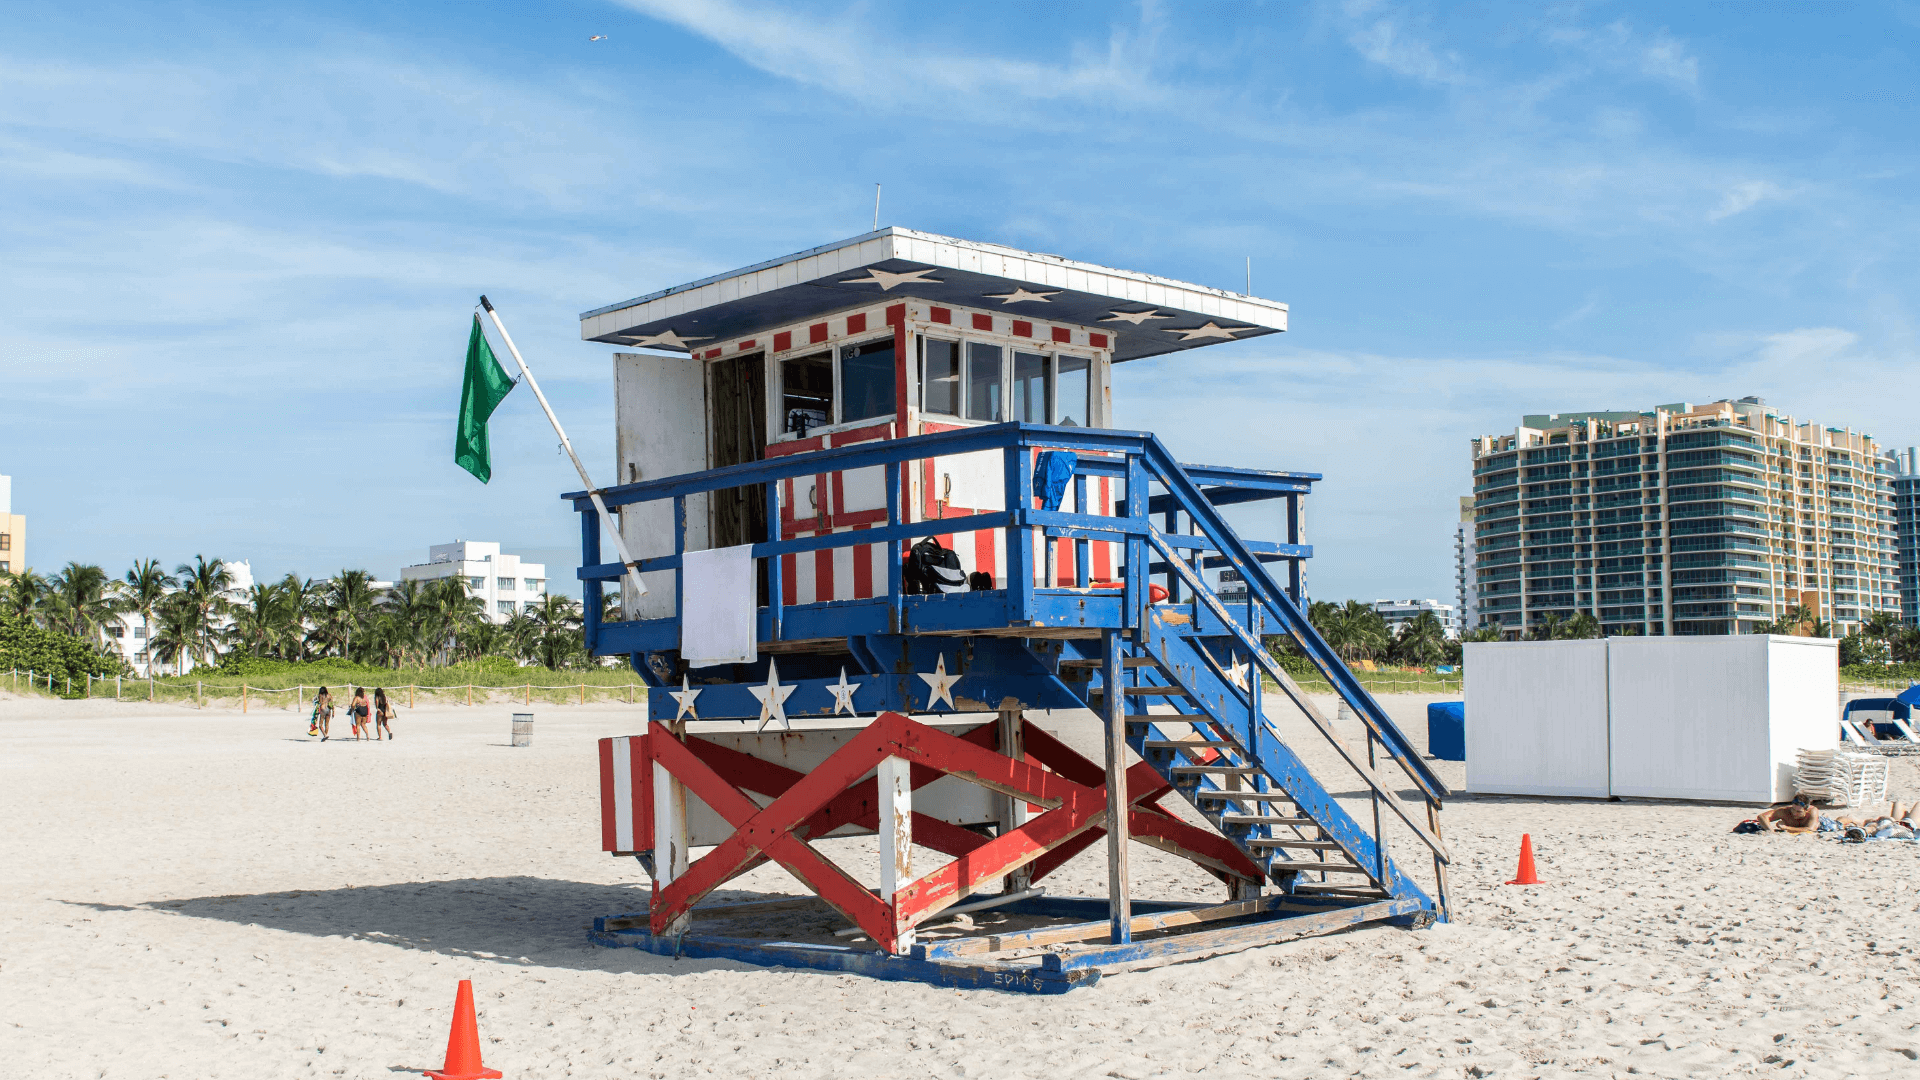 Les Lifeguard Towers de Miami Beach